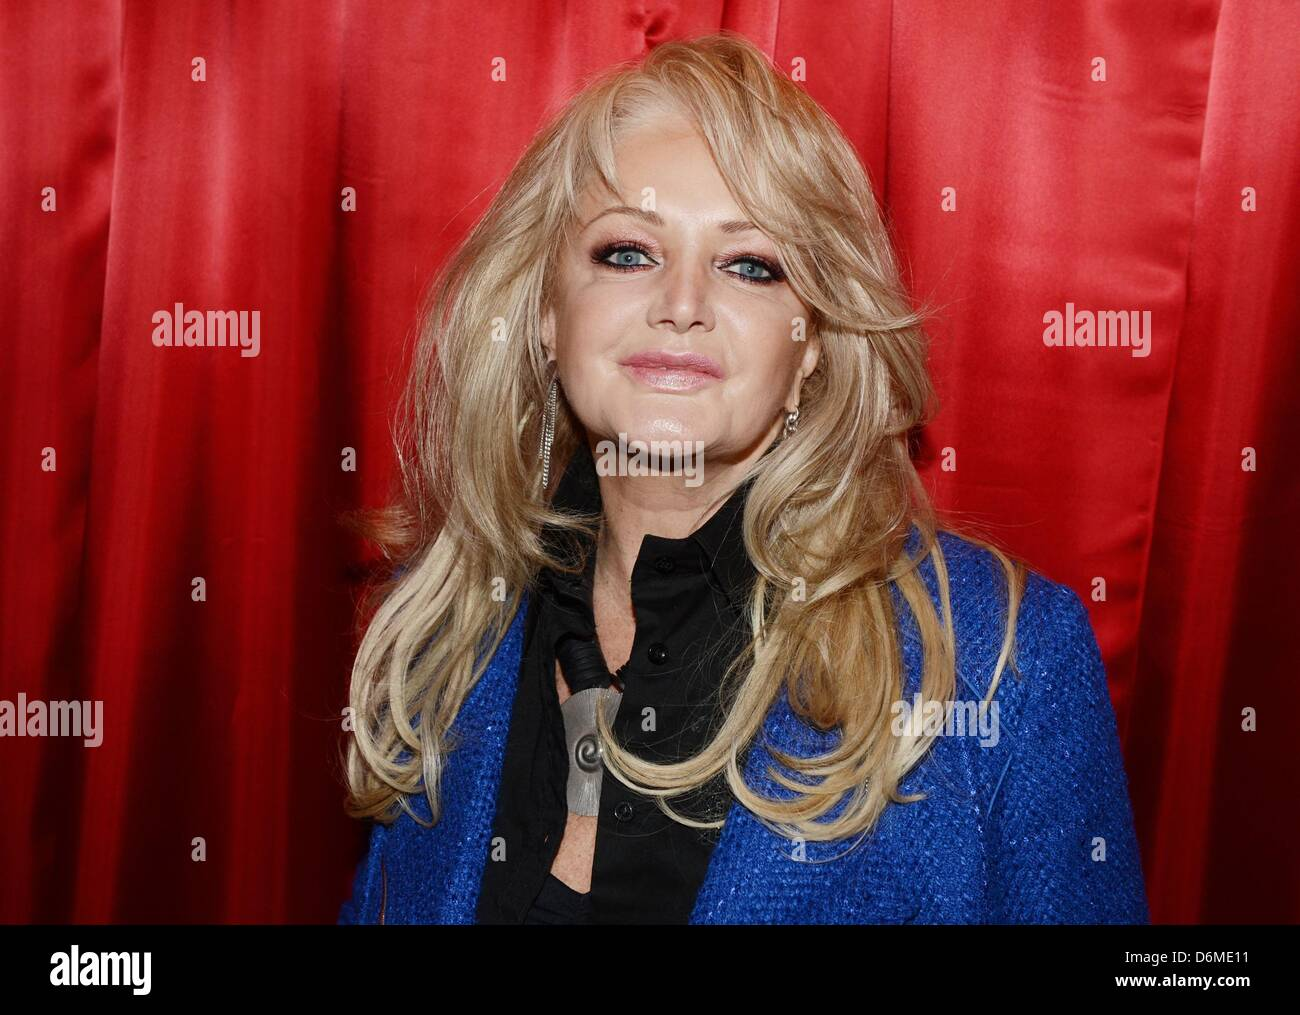 British singer Bonnie Tyler poses and smiles at the Madame Tussauds wax works in Berlin, Germany, 20 April 2013. - Stock Image